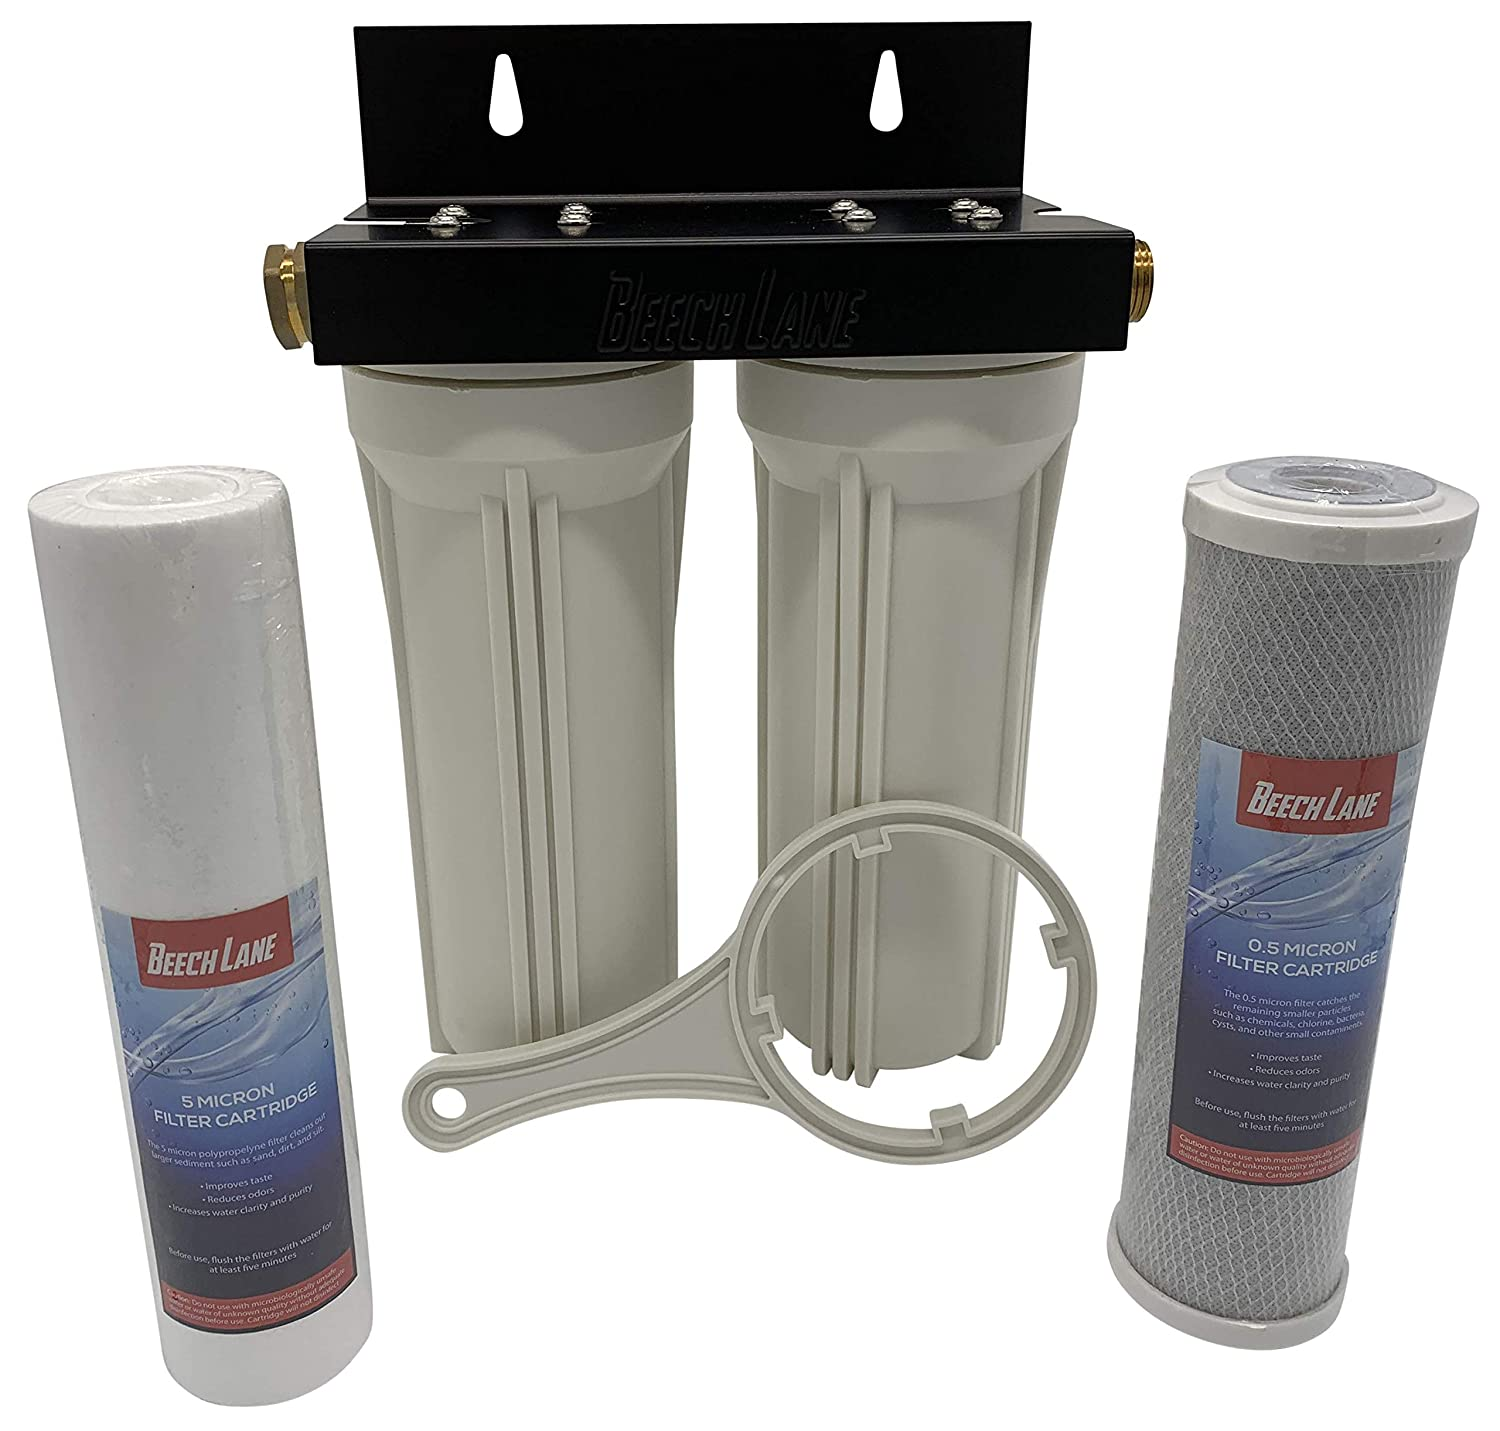 Beech Lane Dual RV Water Filter System, Leak-Free Brass Fittings, Mounting Bracket and Two Filters Included, Sturdy Construction is Built to Last